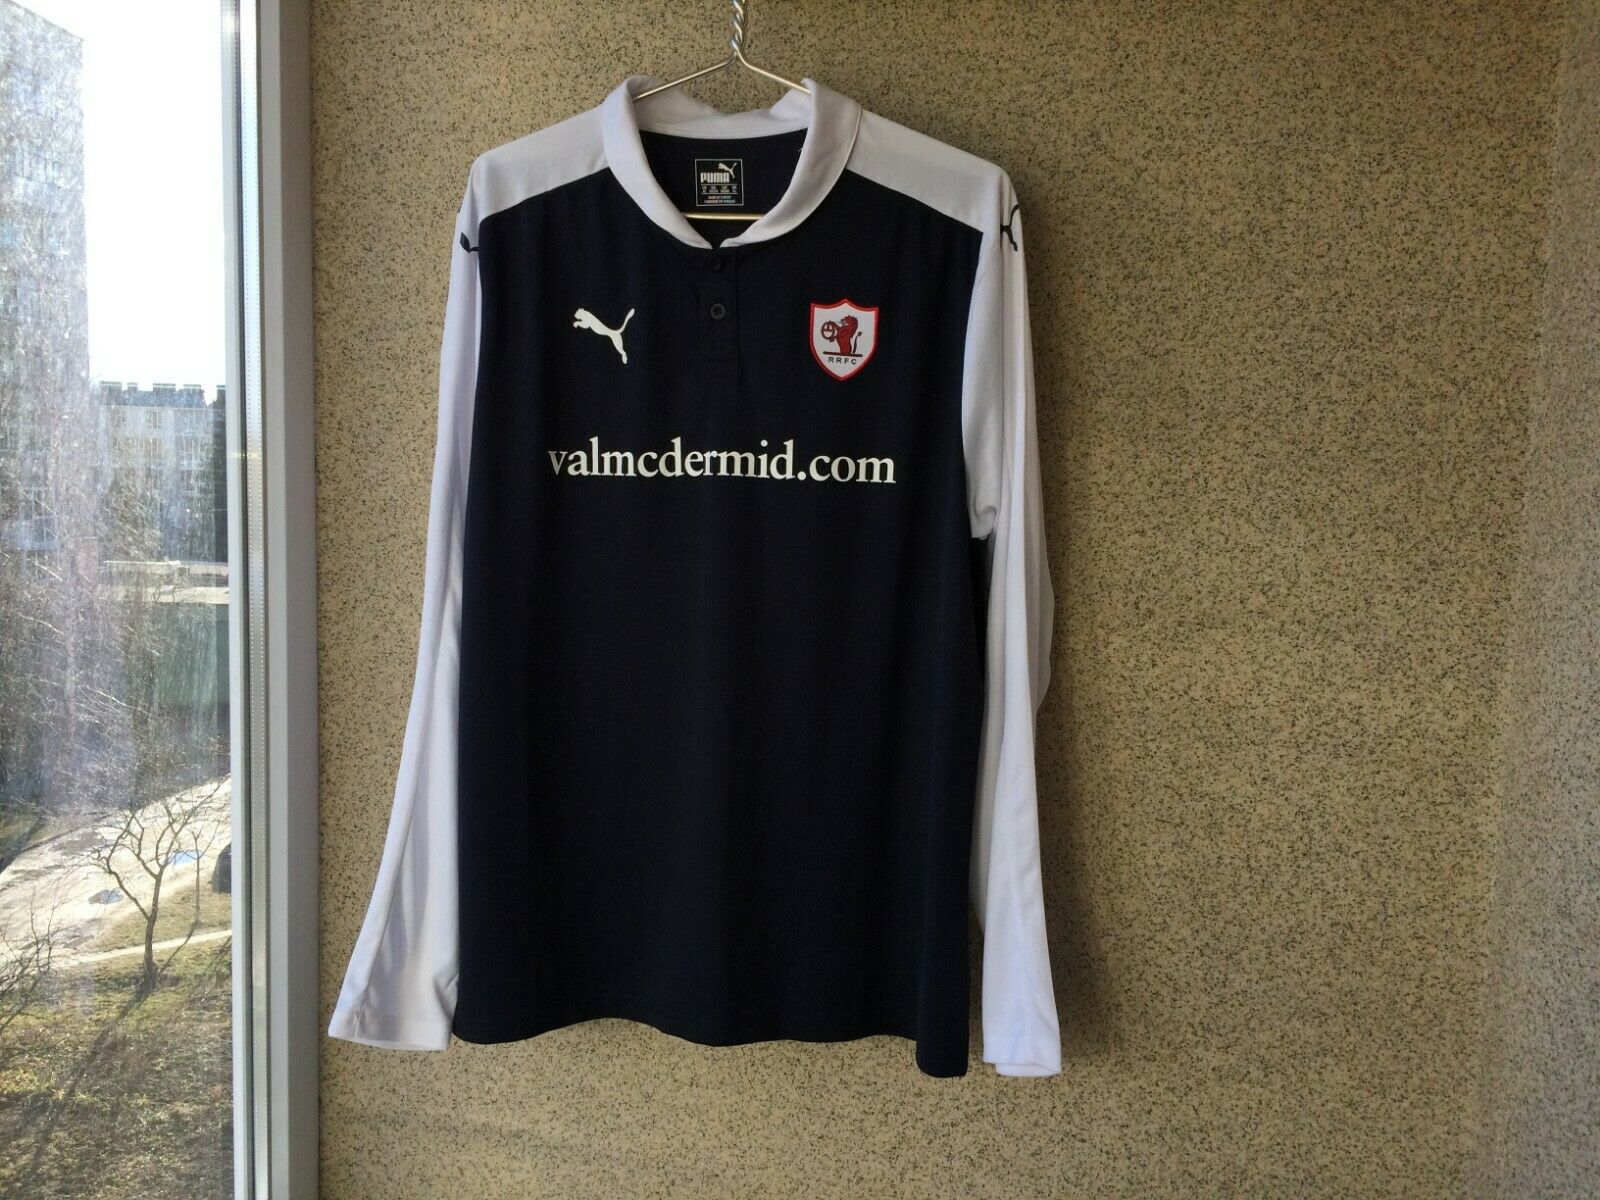 83391b3a0 Raith Rovers football shirt 2015 2016 JERSEY PUMA SOCCER SCOTLAND XL Home  nobkyb252-Men